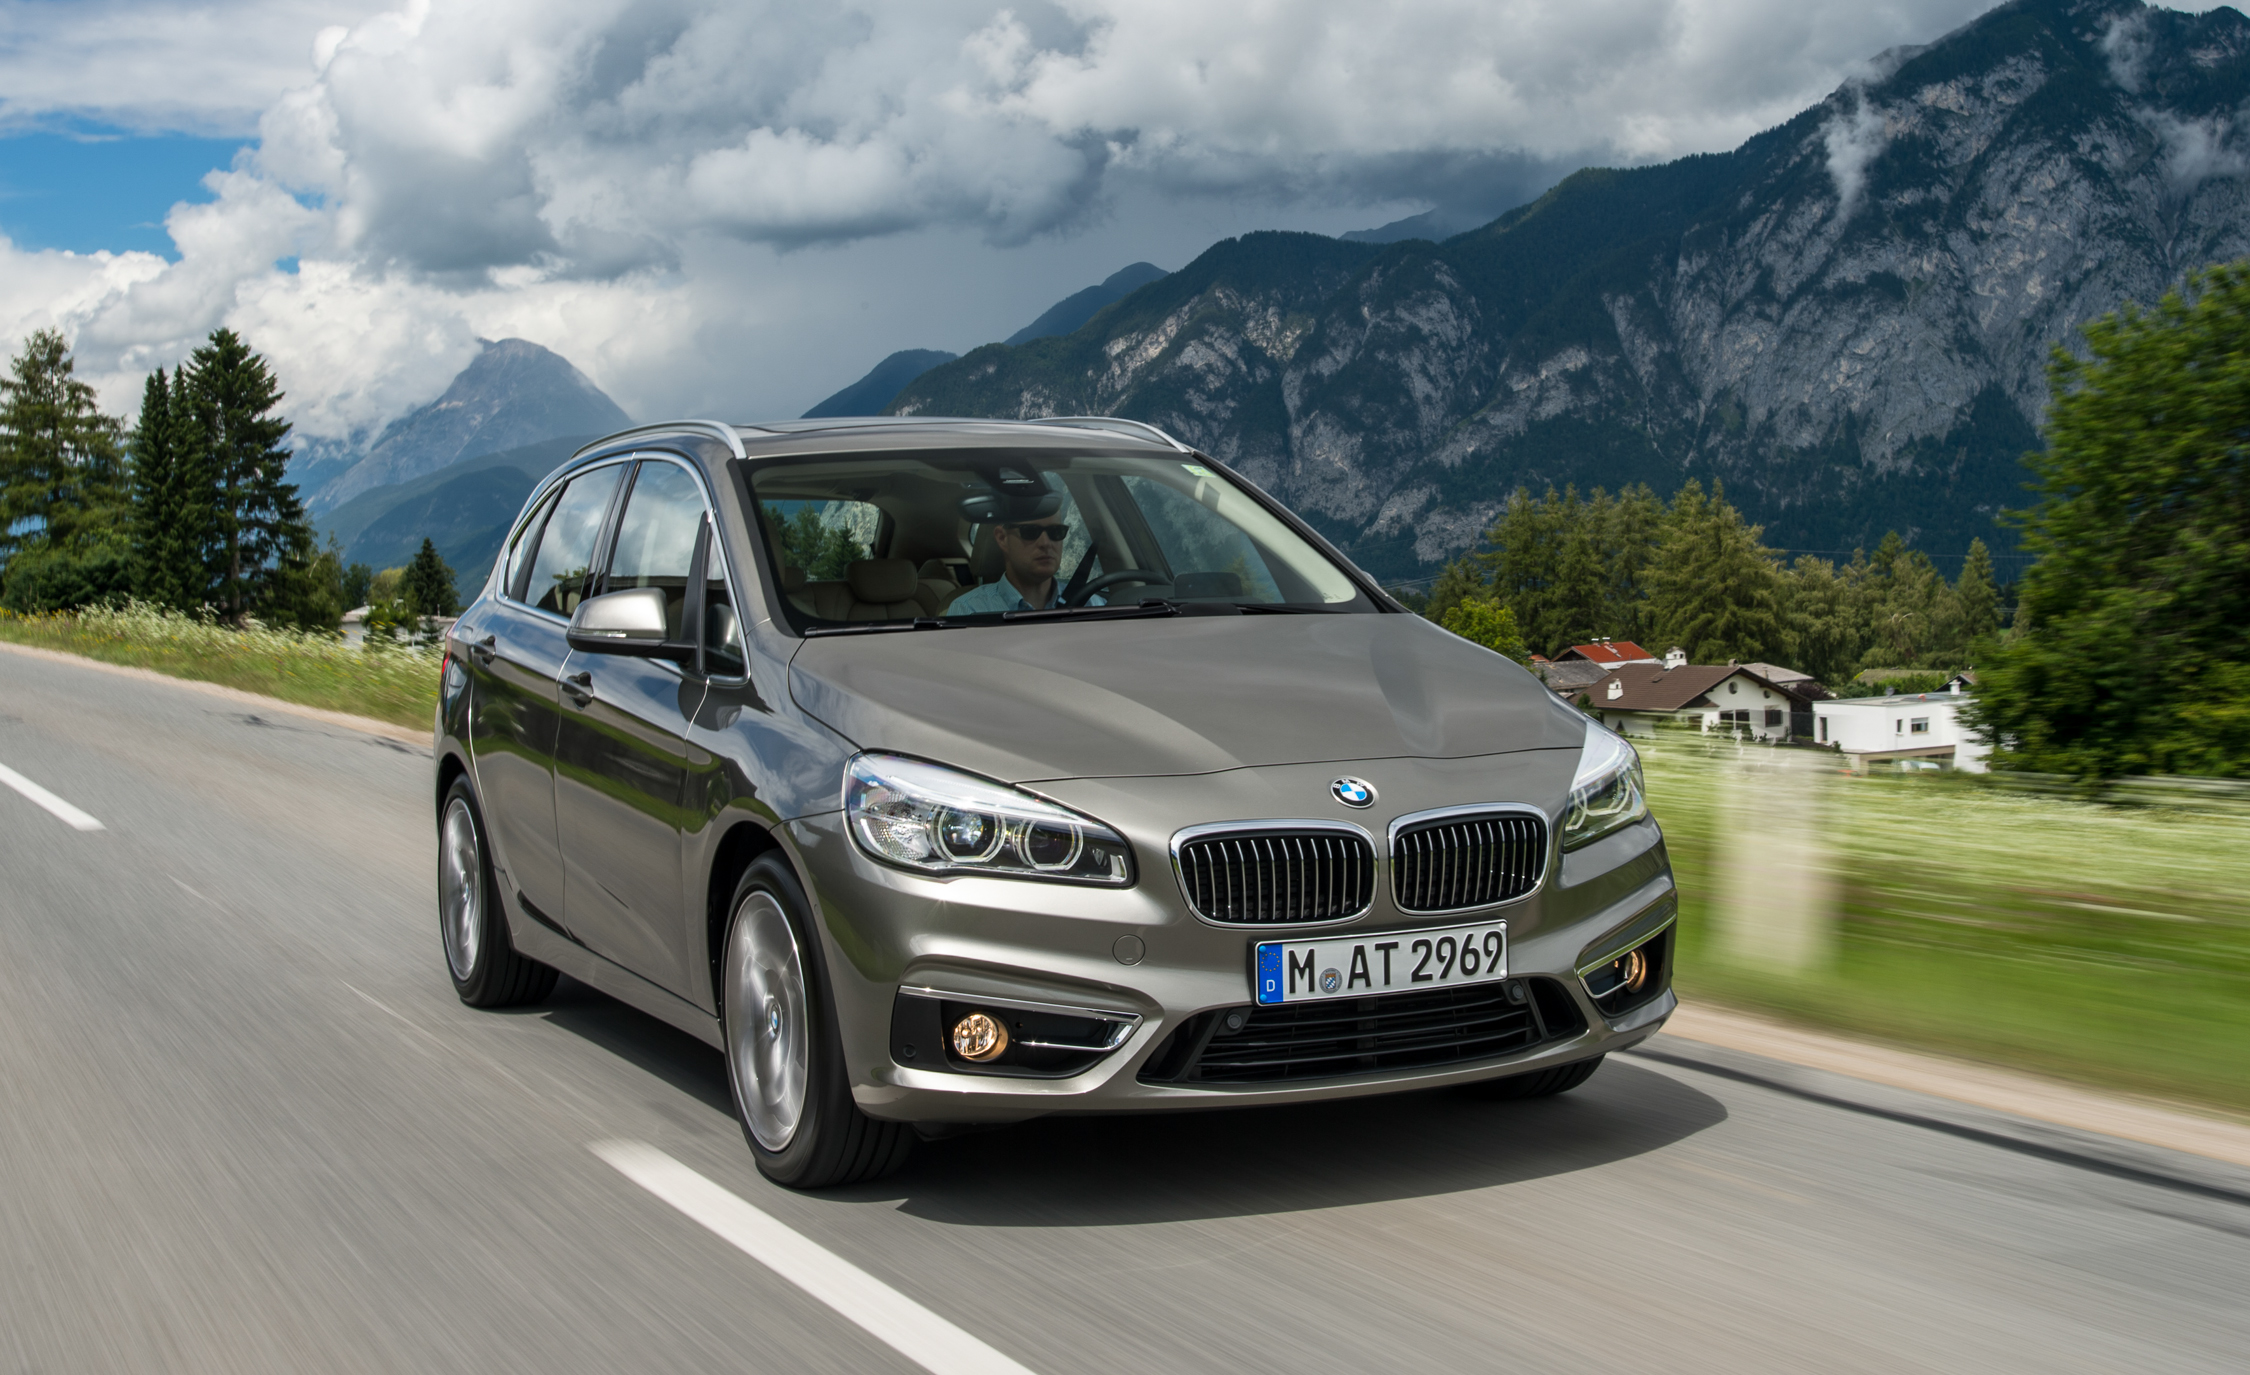 225i The Bmw 2 Series Active Tourer For American Citizen